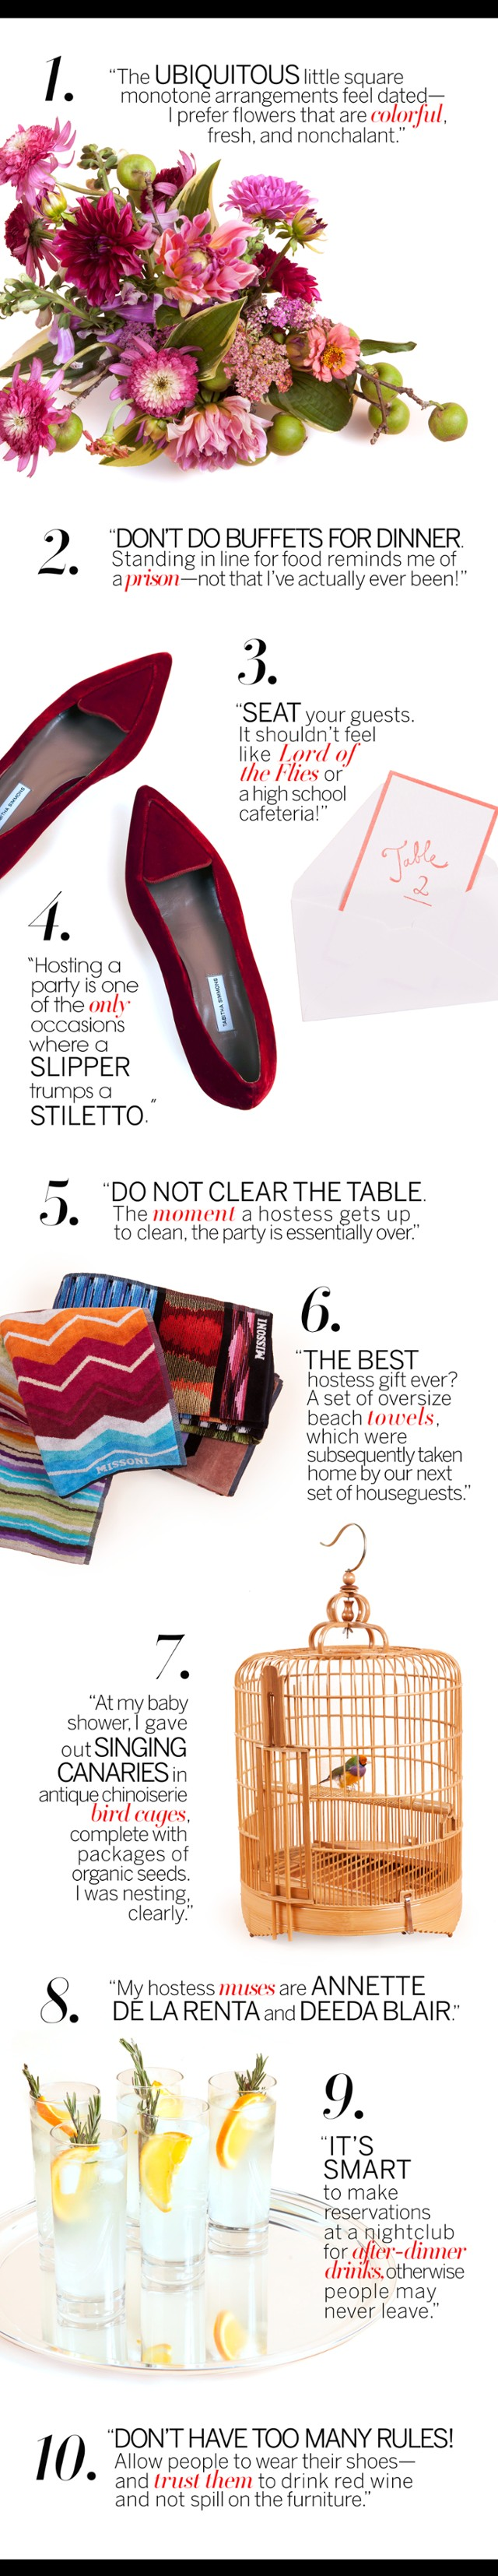 Index Annex: Lauren Santo Domingo's Hostess' Primer - Vogue Daily - Fashion and Beauty News and Features